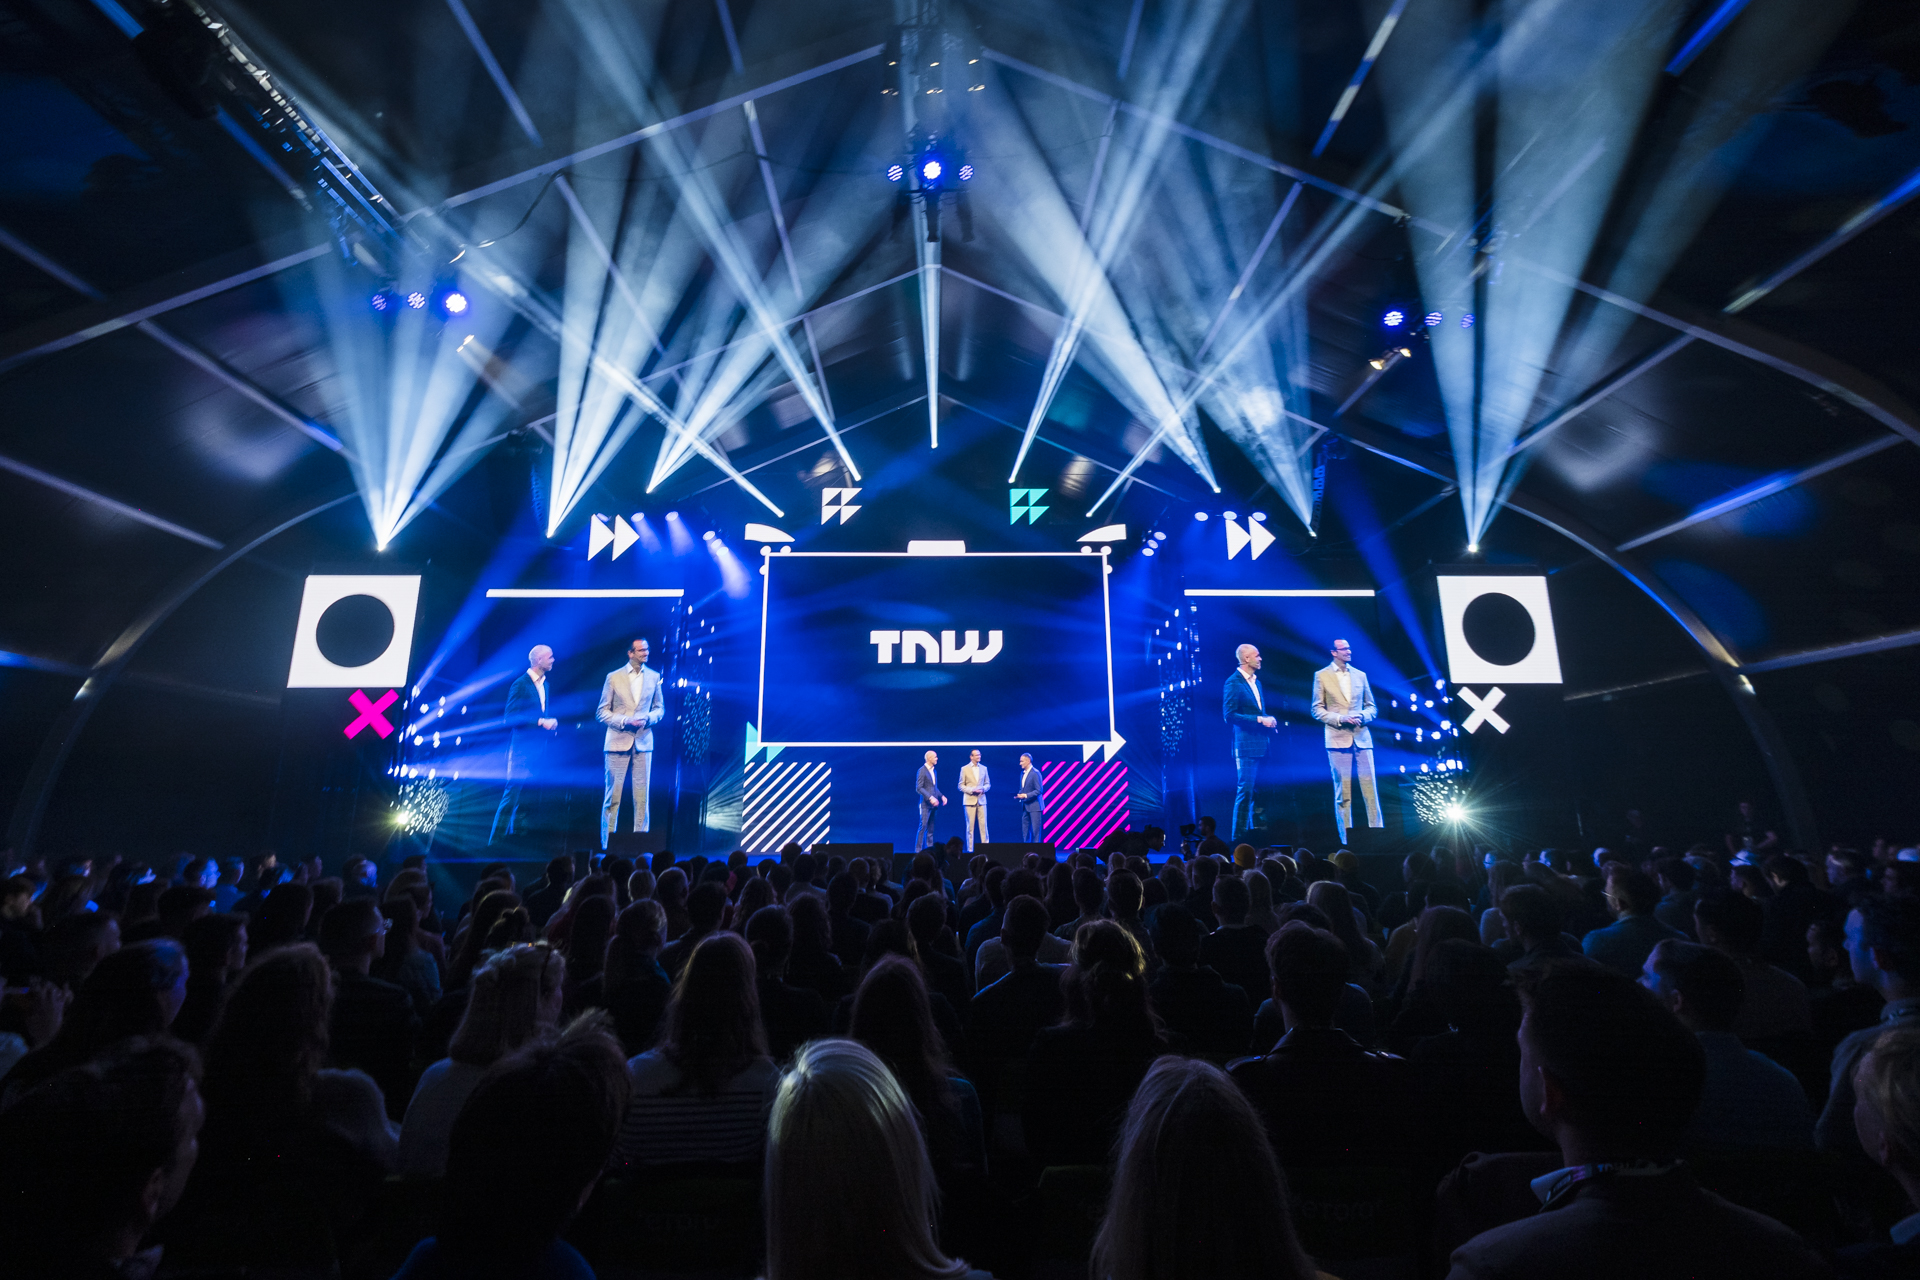 TNW 2019 - Amsterdam, The Netherlands - 09 May 2019 - Image copyright Dan Taylor - dan@dantaylorphotography.com-52 (3).jpg